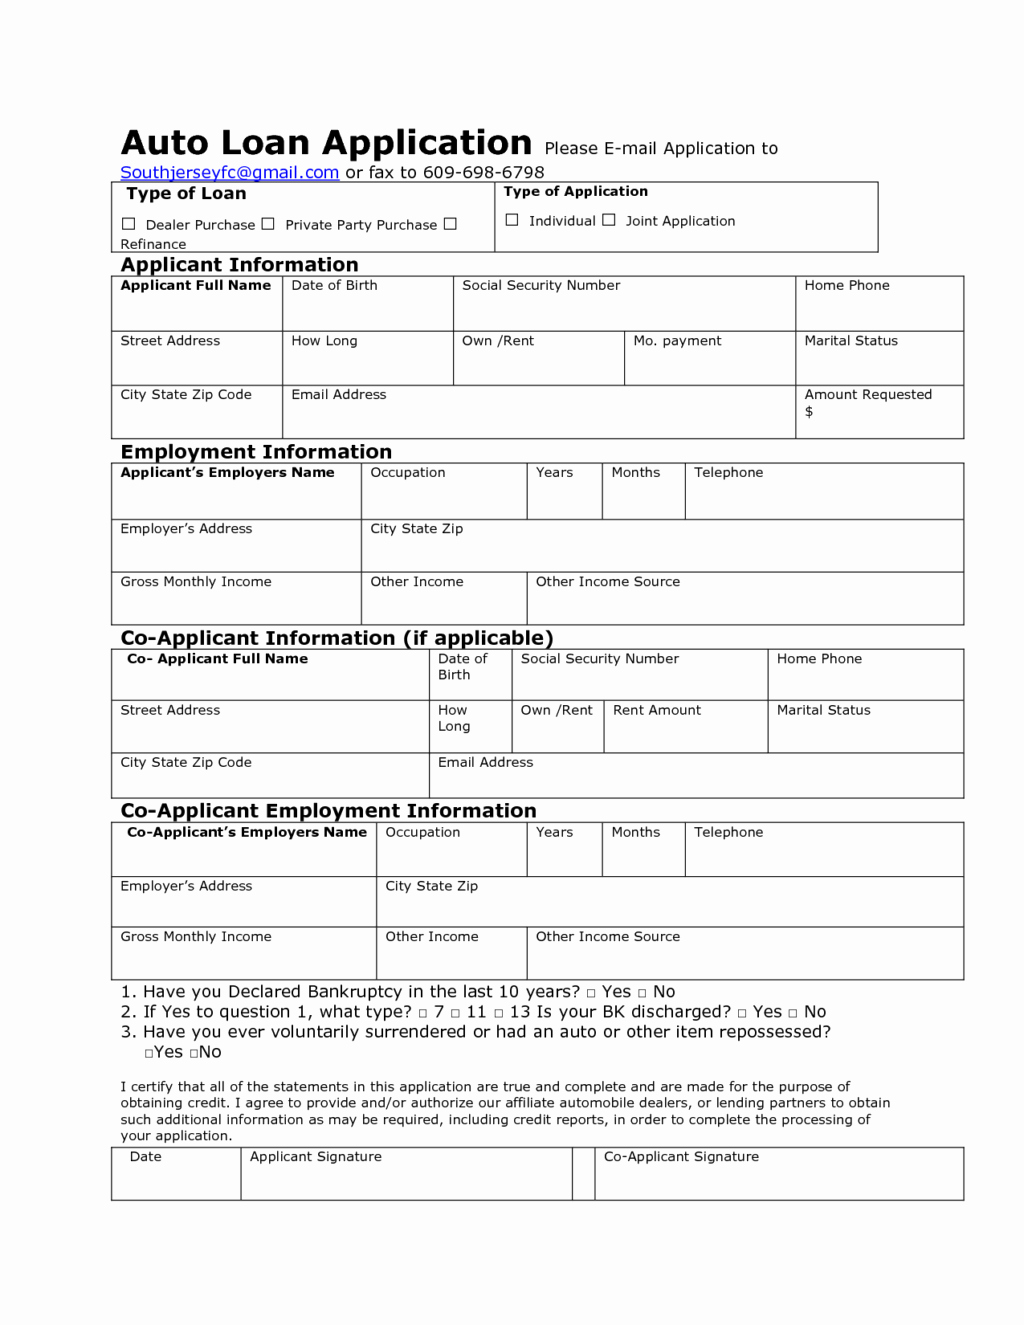 Auto Credit Application form Template New Auto Credit Application Template